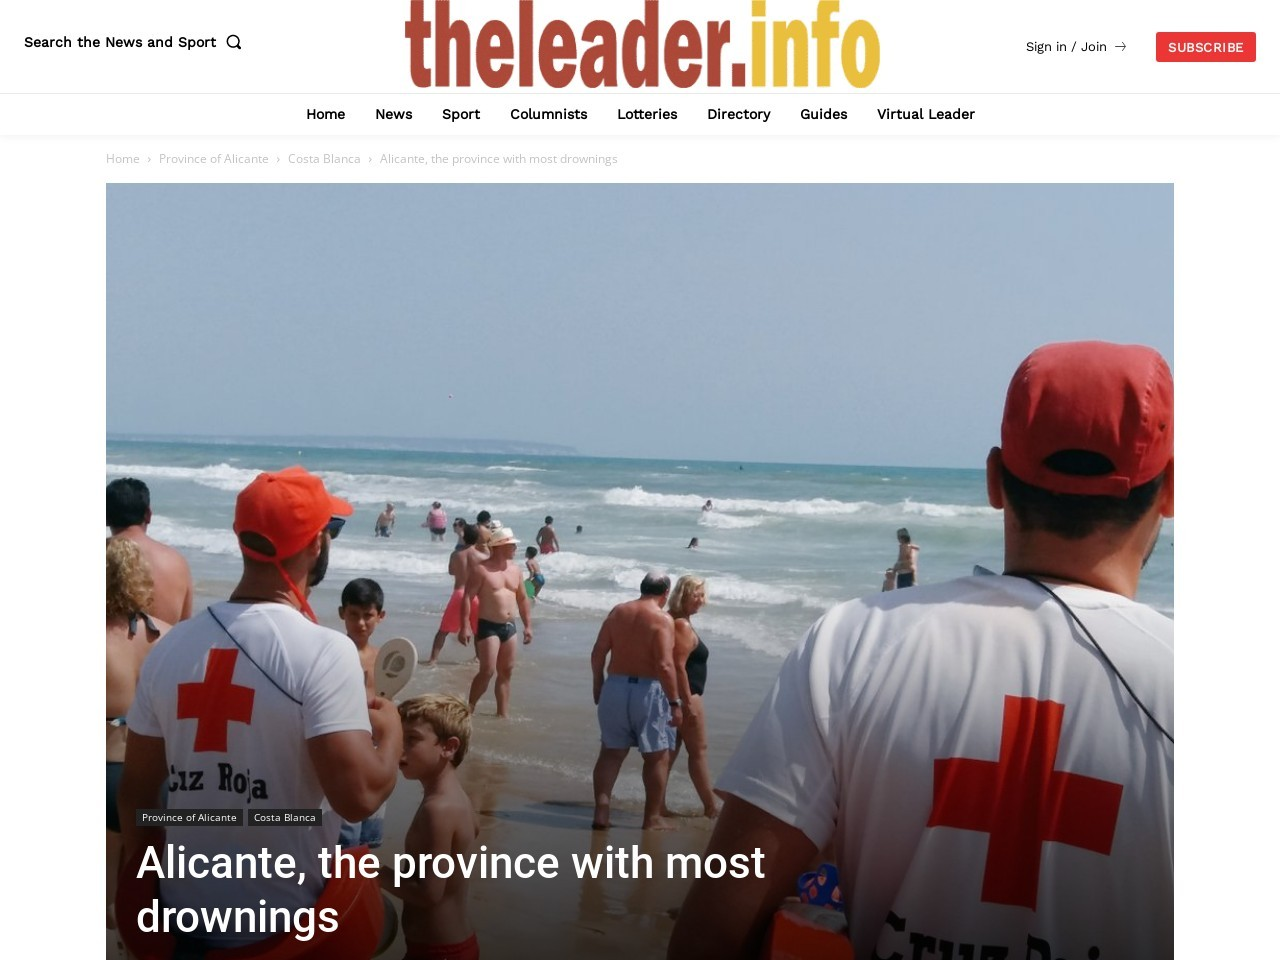 Alicante, the province with most drownings